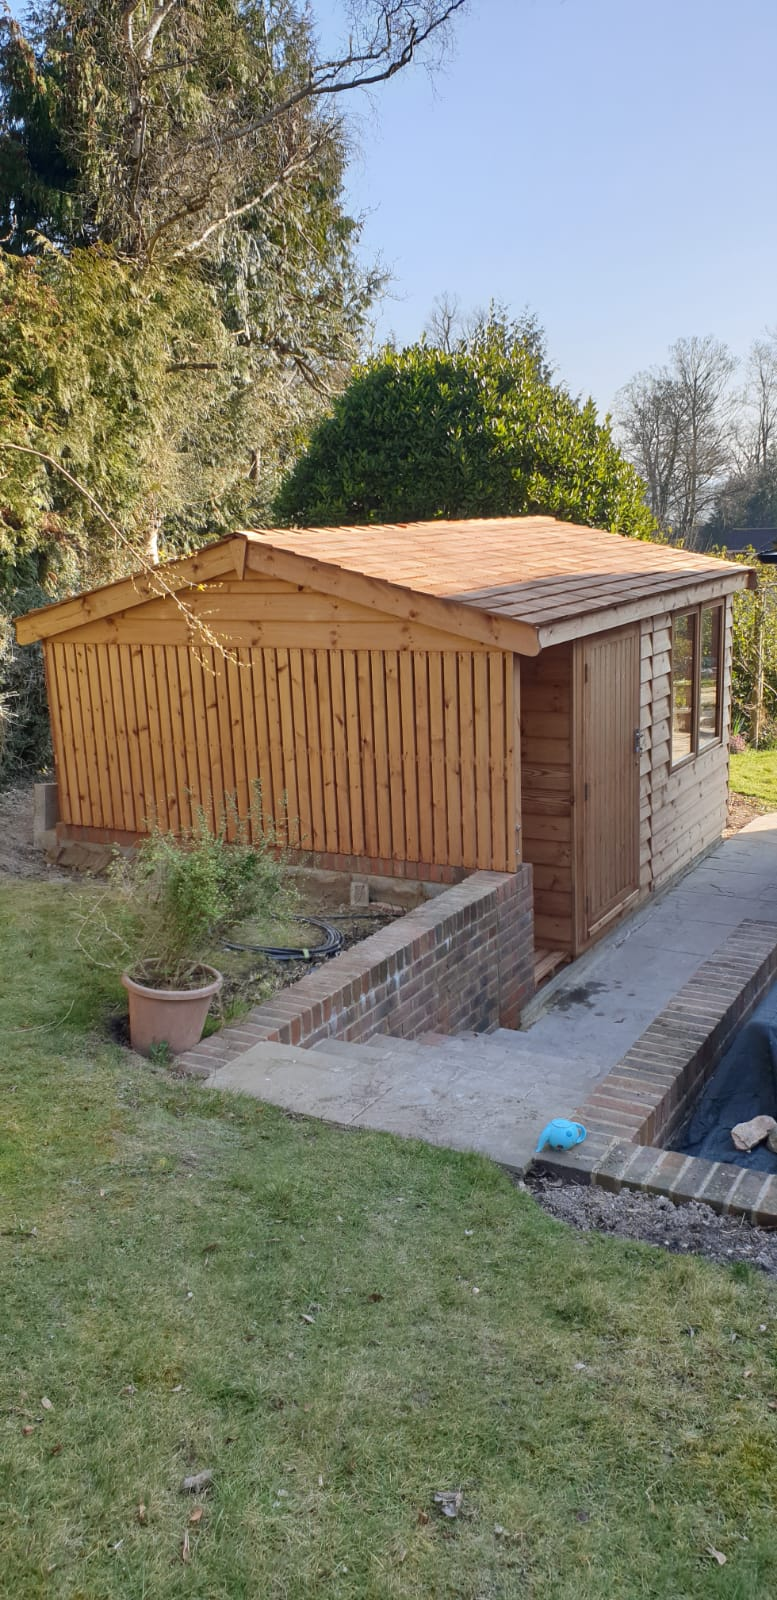 "<p id=""boldtitle"">Bespoke Workshop with Logstore</p>Combined Workshop with Logstore.<br/>Cedar Shingle Roof.<br/>To fit into customers space."